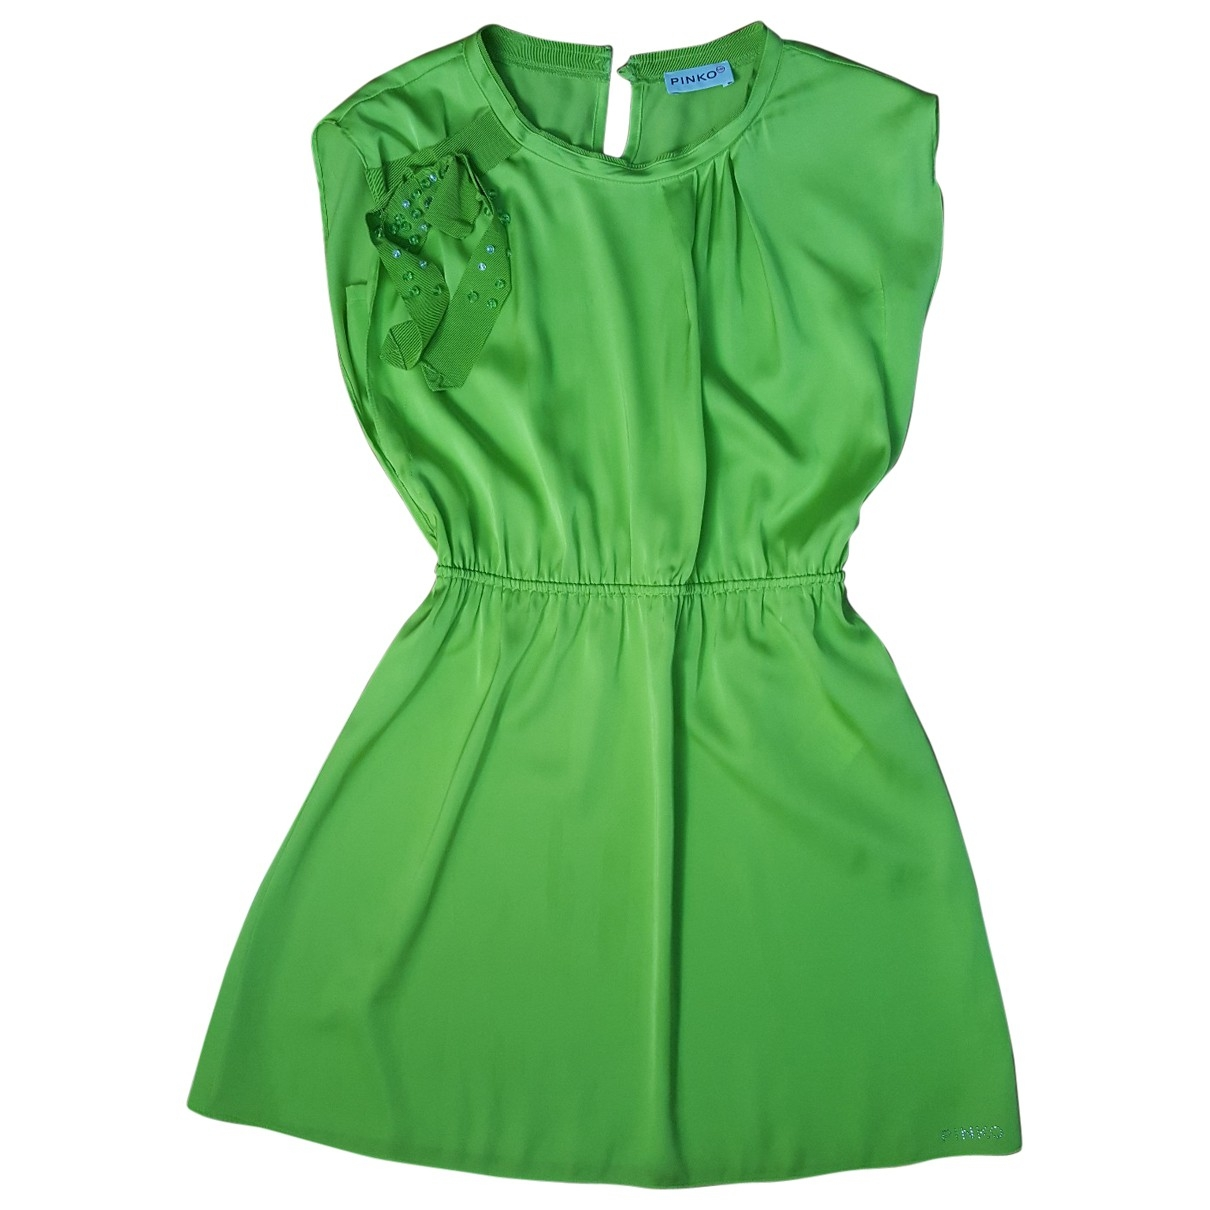 Pinko \N Green dress for Kids 10 years - up to 142cm FR